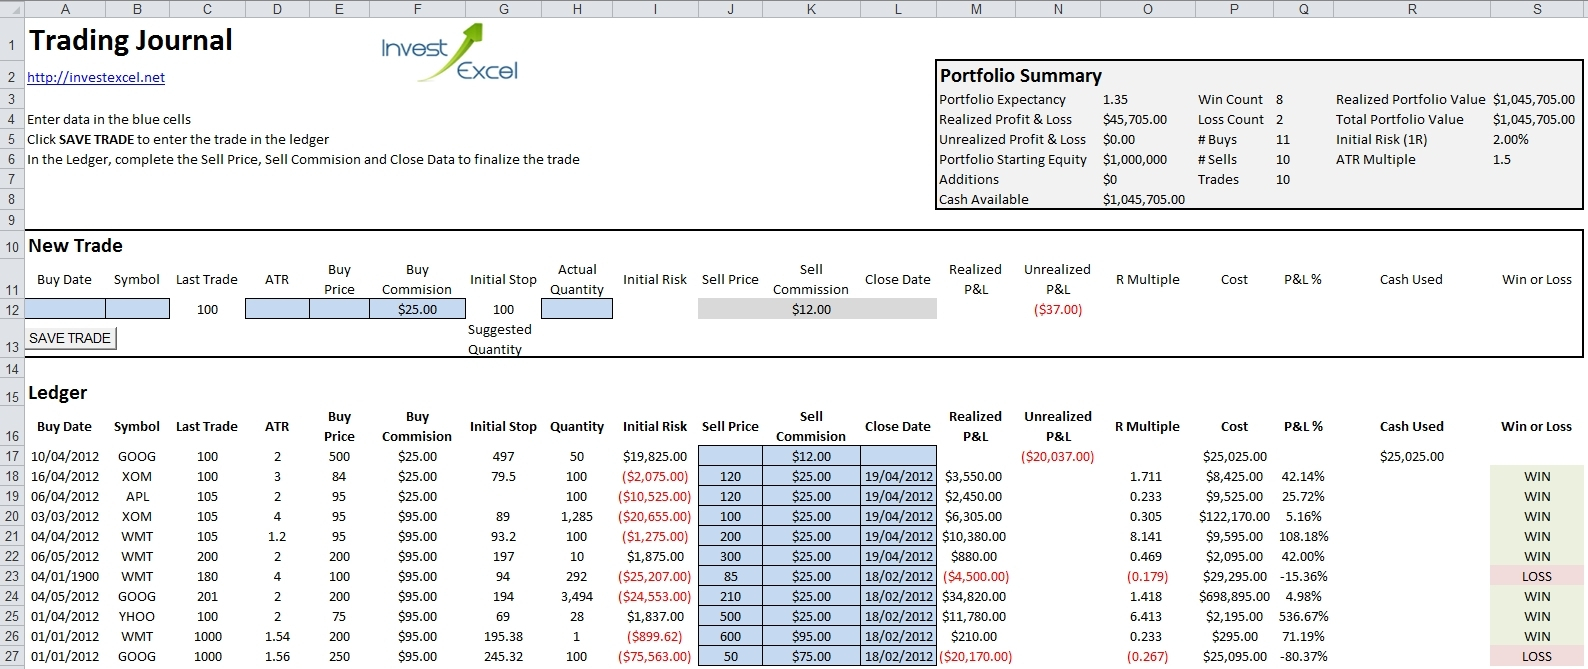 Trading P&l Spreadsheet Intended For Trading Pl Spreadsheet  Onlyagame Inside Option Trading To Options